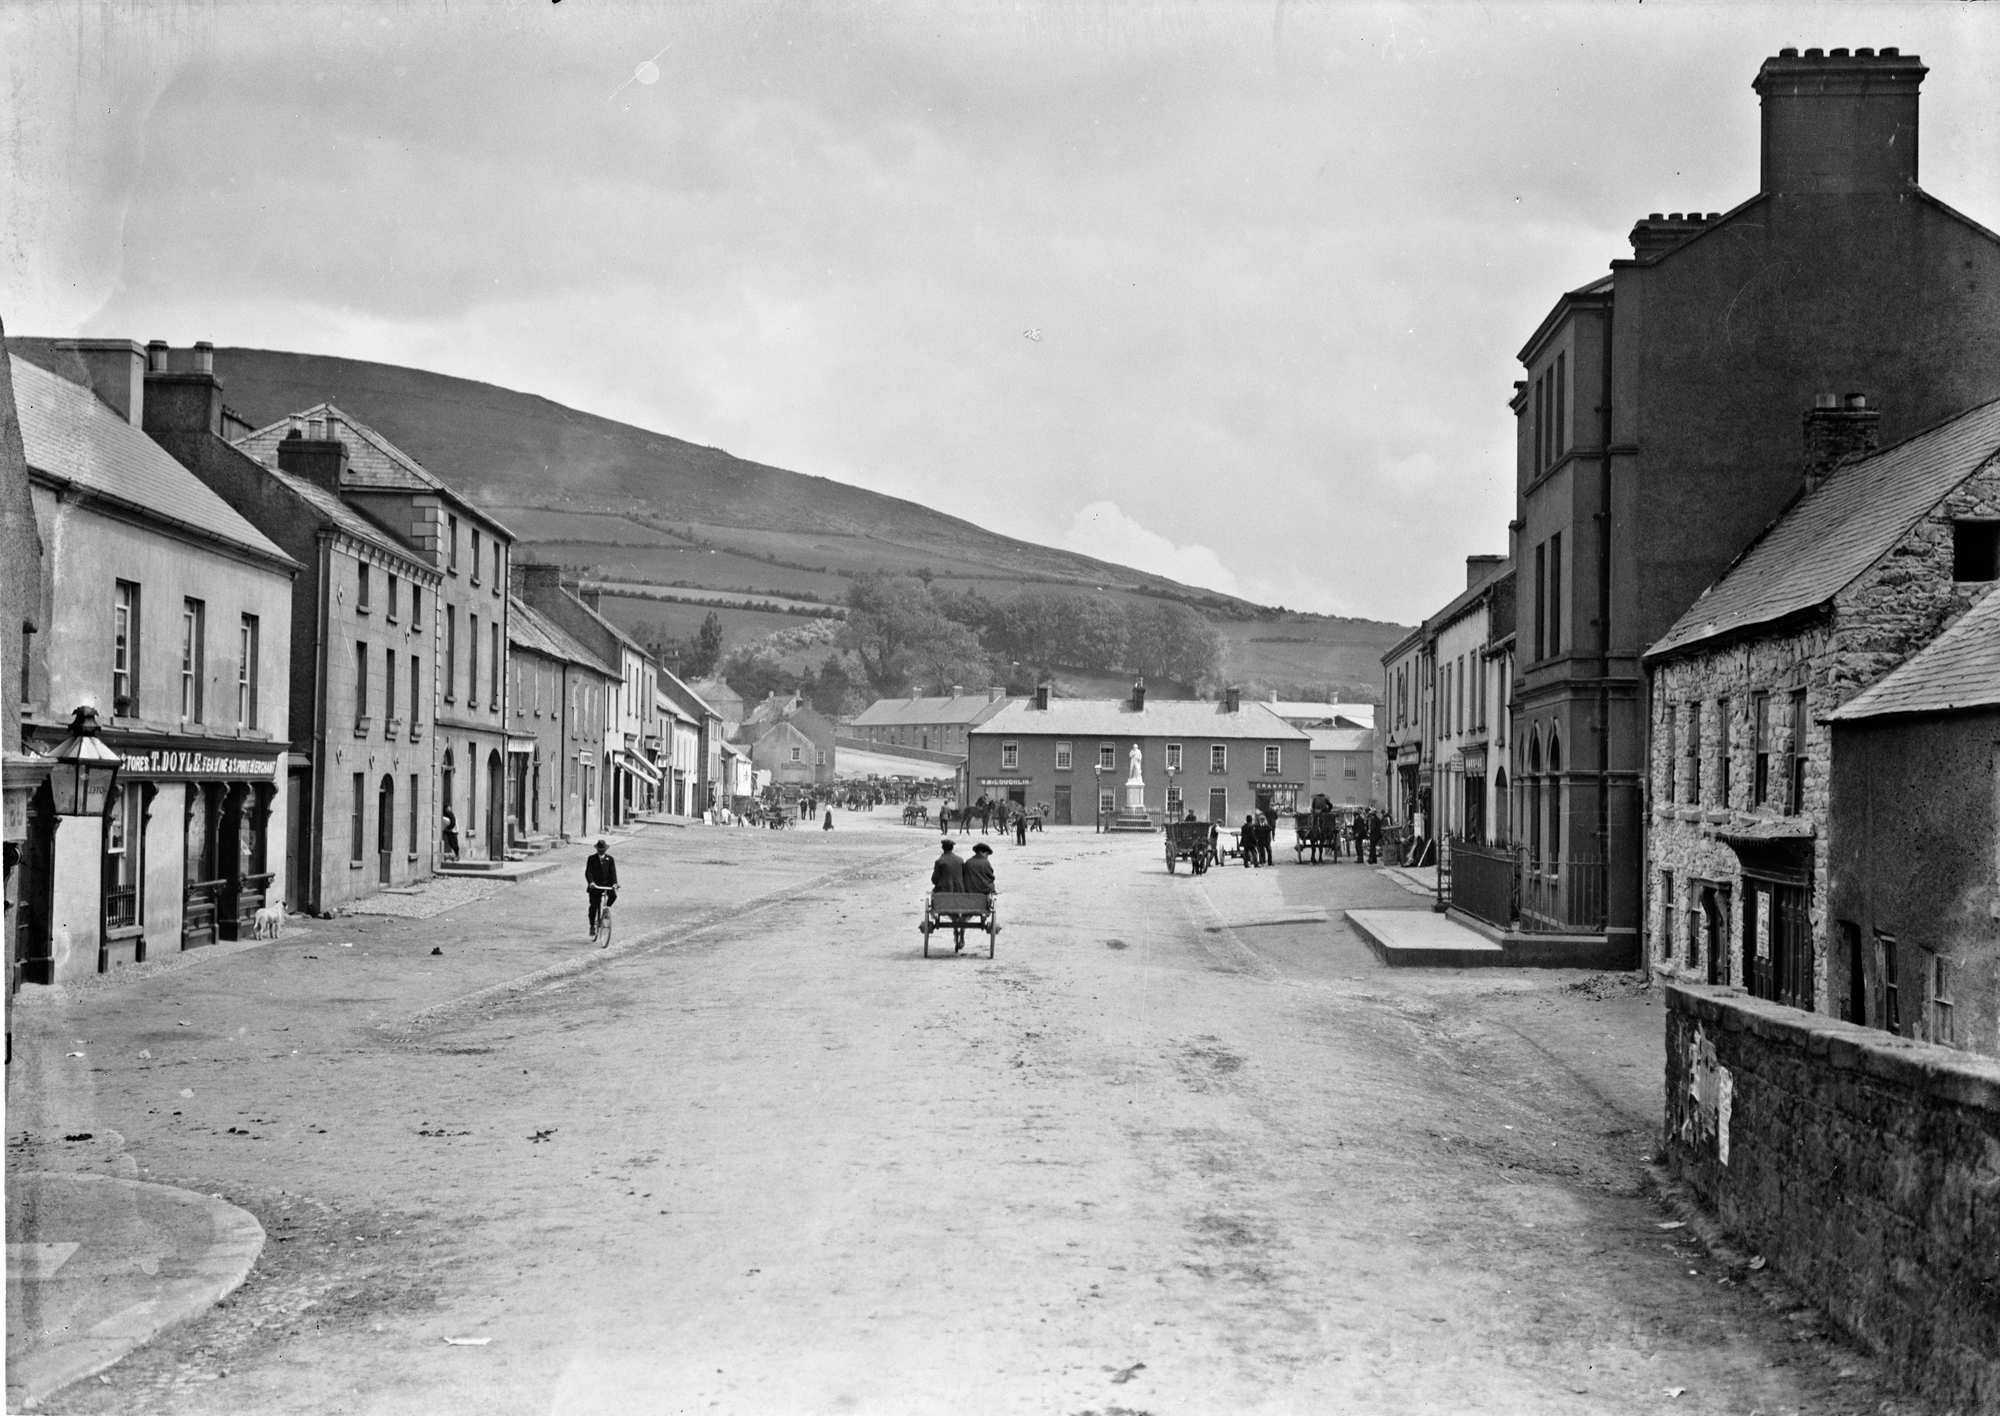 The Square, Baltinglass, Co. Wicklow